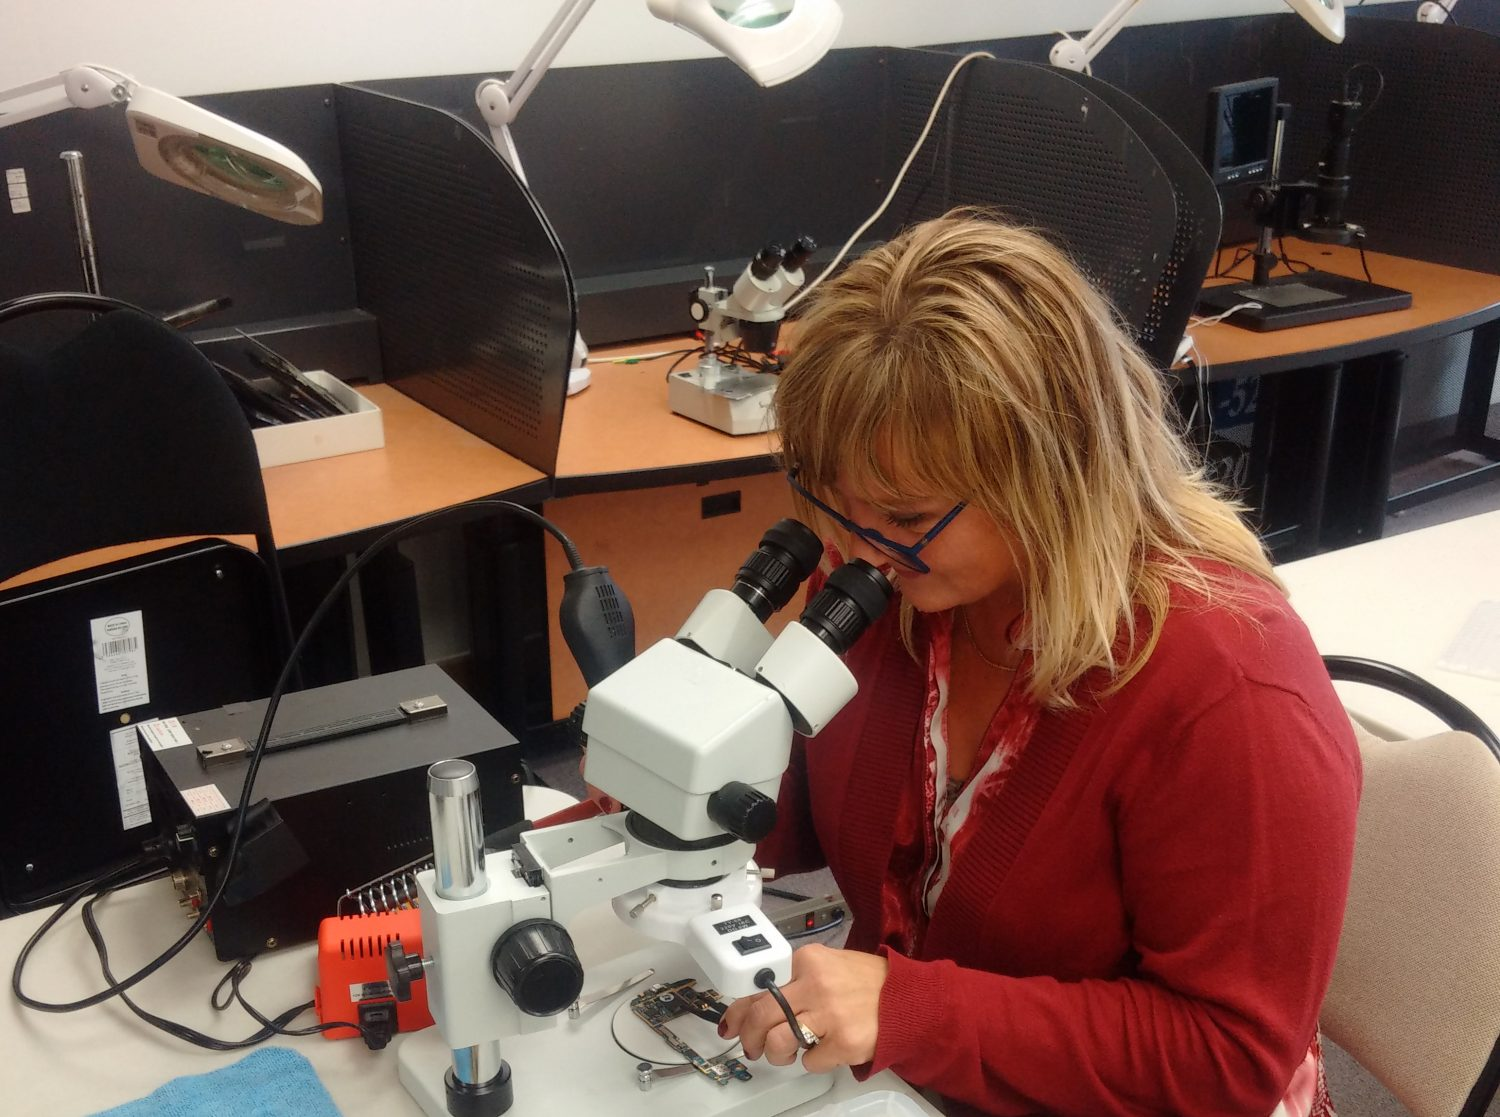 Mobile Phone Repair Technician Training Cell Phone Course Classes